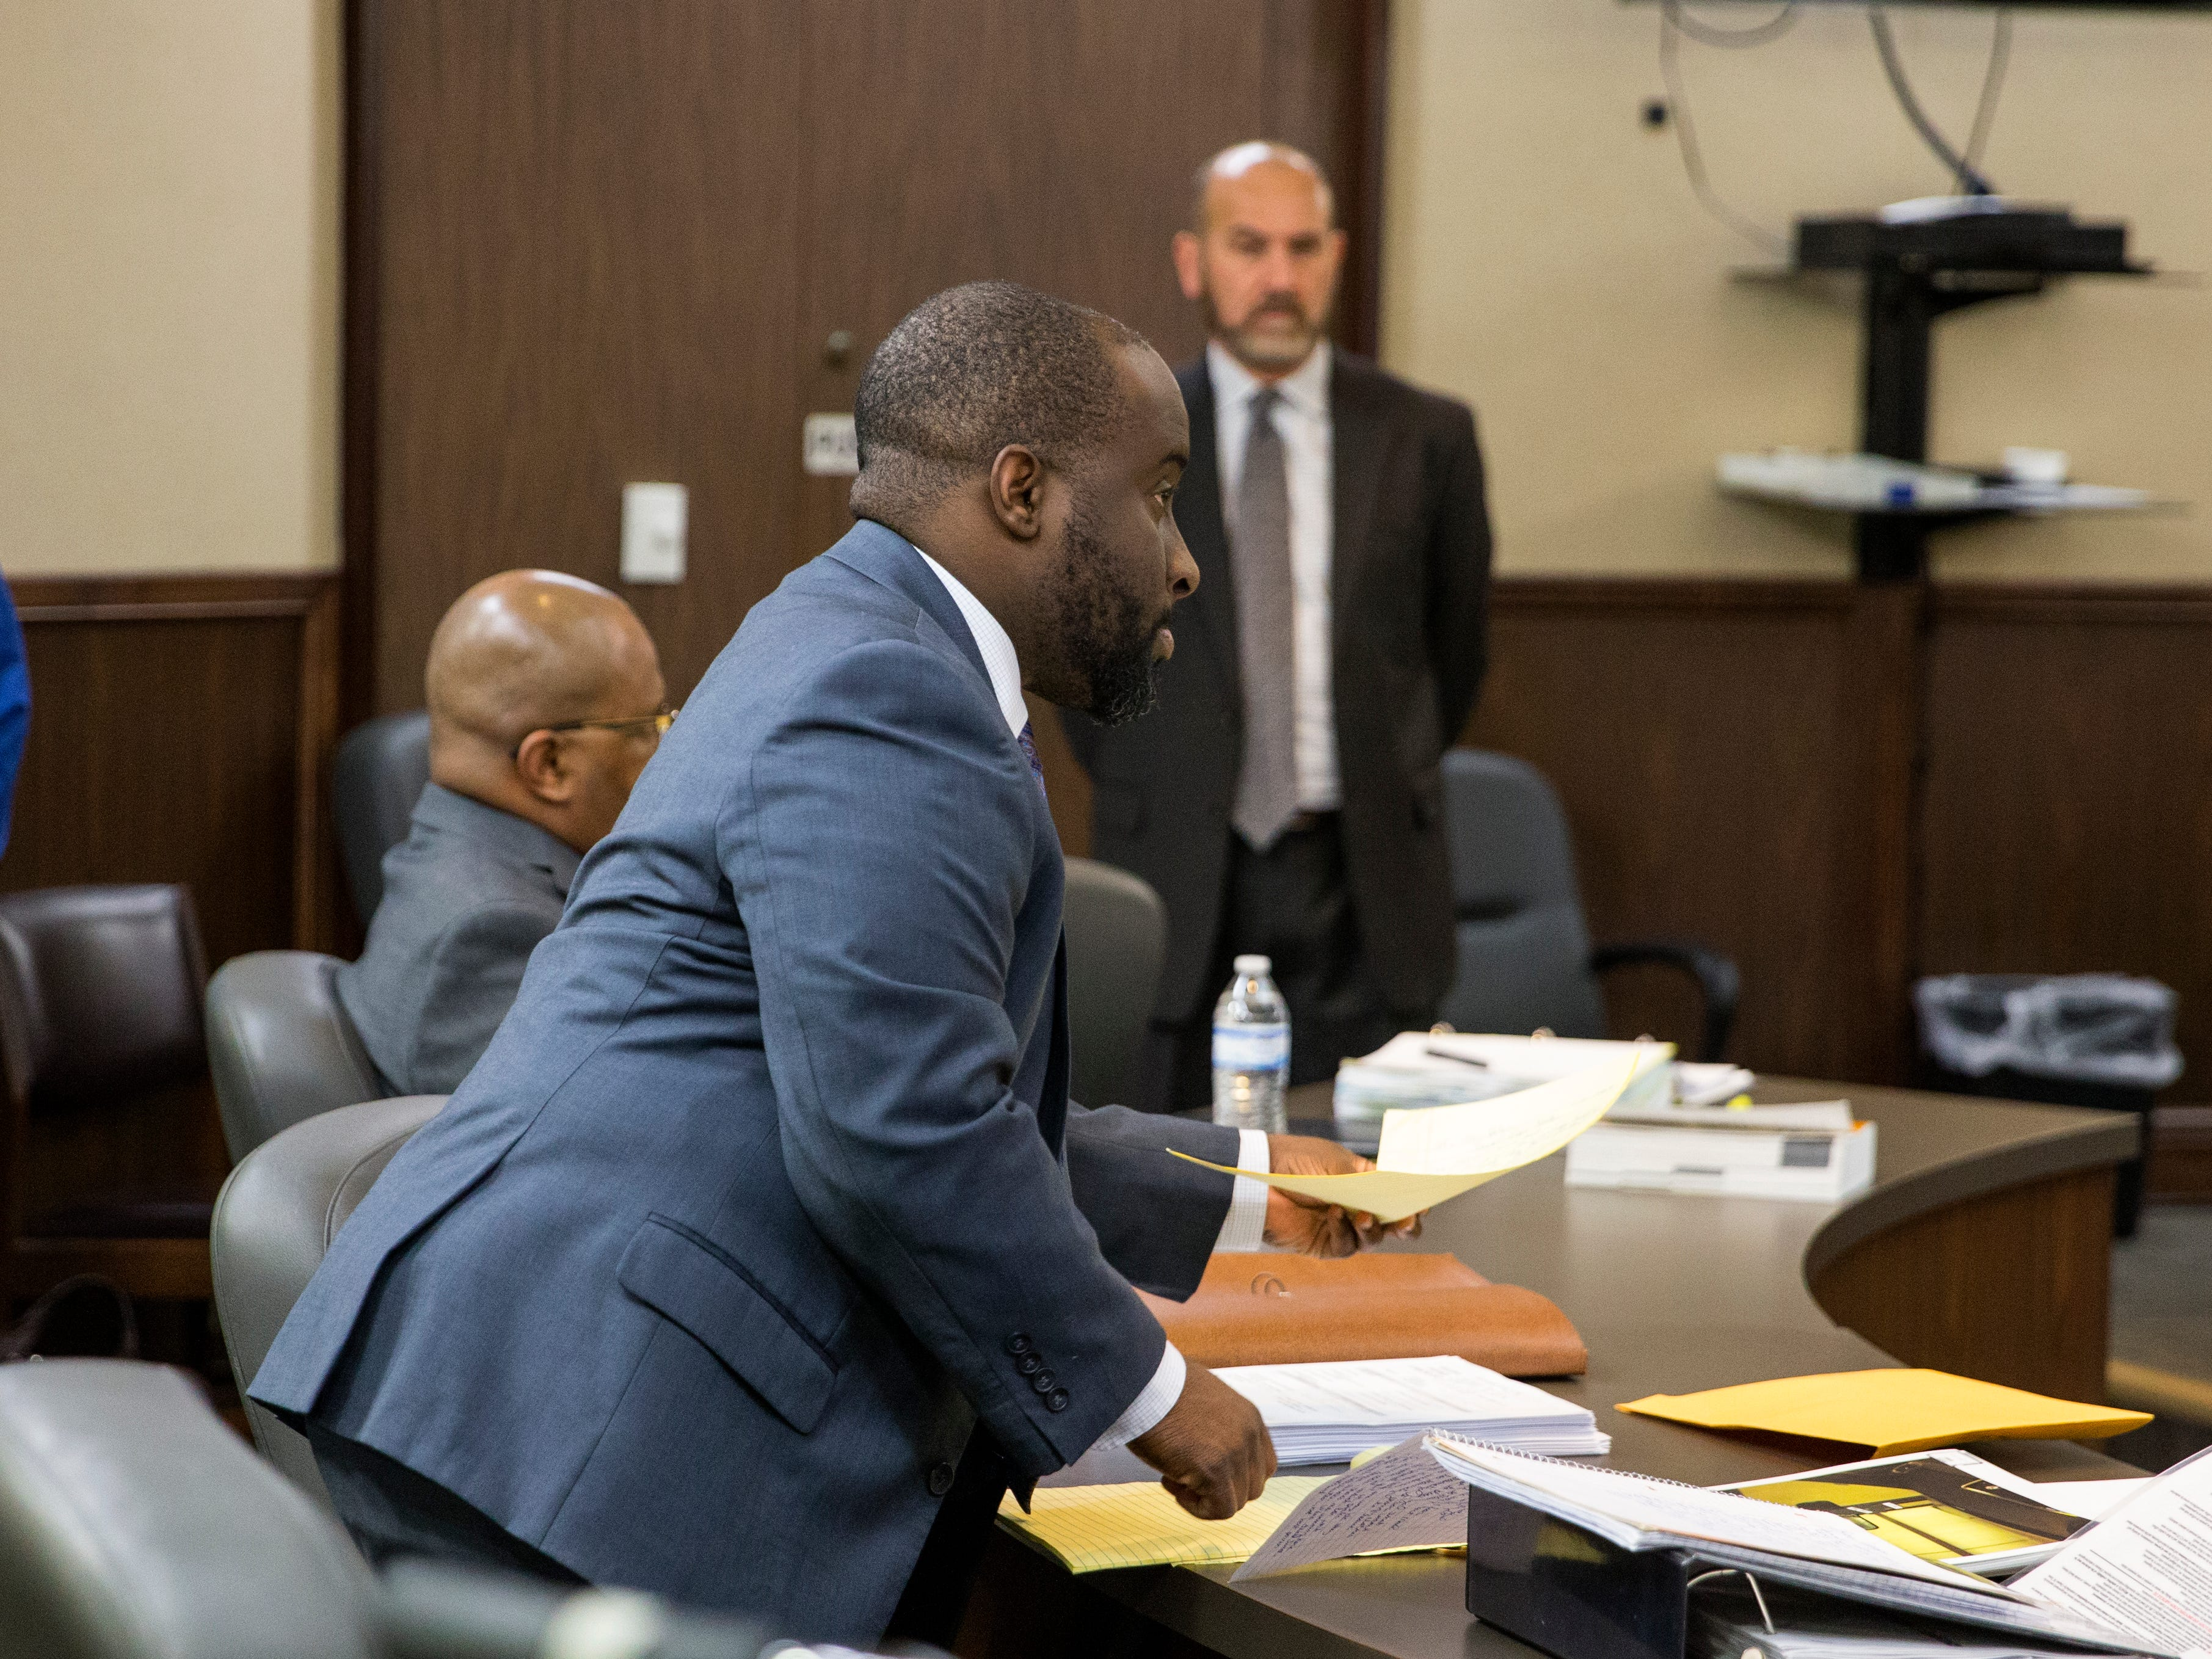 Prosecutor Matt Manning (center) prepares for opening statements in the trial of Elton Wayne Holmes waits for opening statements to begin in the 117th District Court on Tuesday, January 9, 2018. Holmes is charged with accident involving death, accident involving serious bodily injury, aggravated assault causing serious bodily injury and manslaughter in an alleged hit-and-run that left Rai-ane Garza, a King High School student dead.